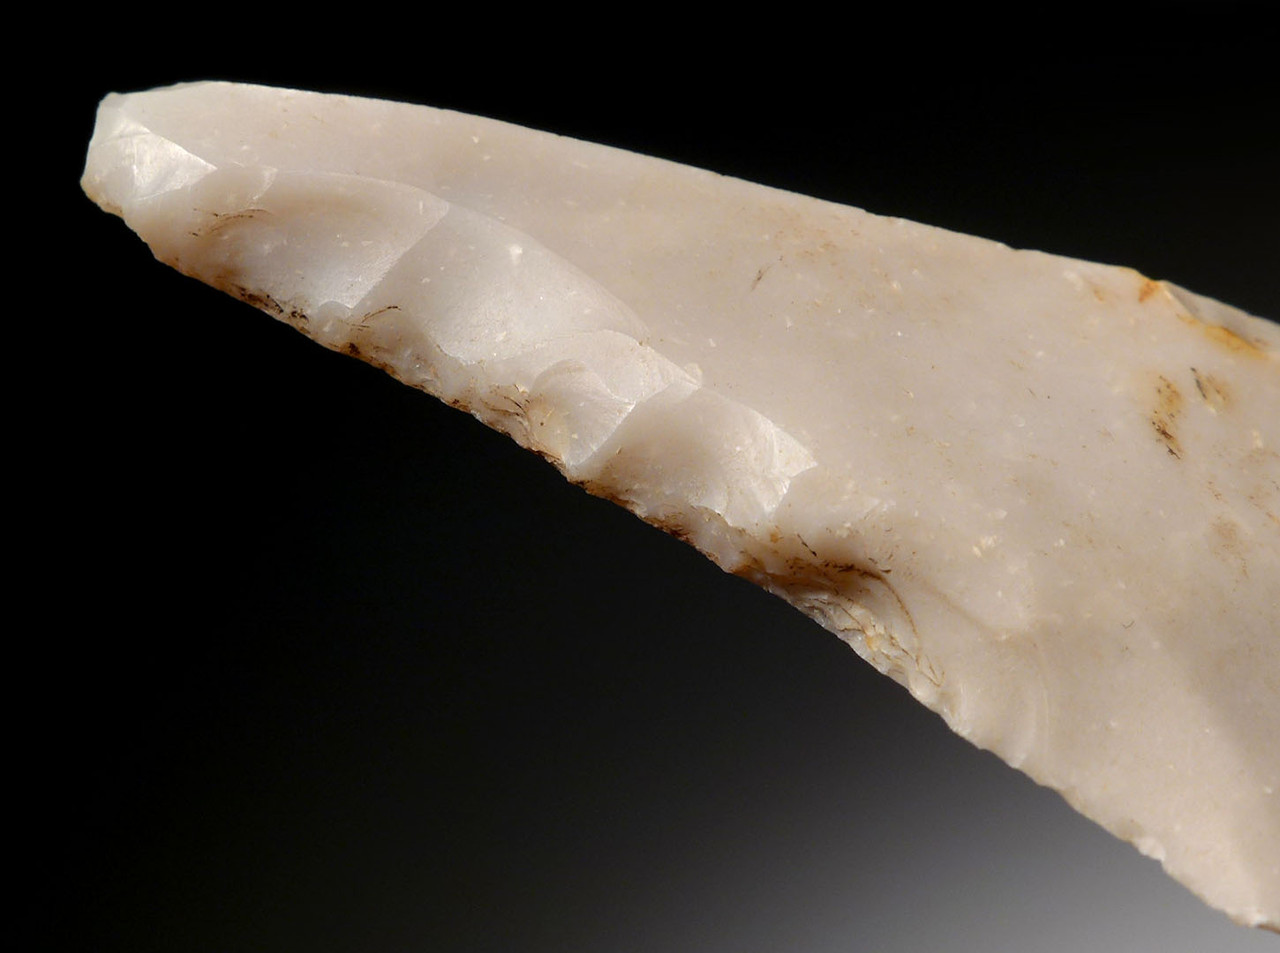 EXCEPTIONAL ELONGATED FLINT NEOLITHIC AWL FLAKE TOOL FROM THE FUNNEL-NECKED BEAKER CULTURE OF DENMARK *N178